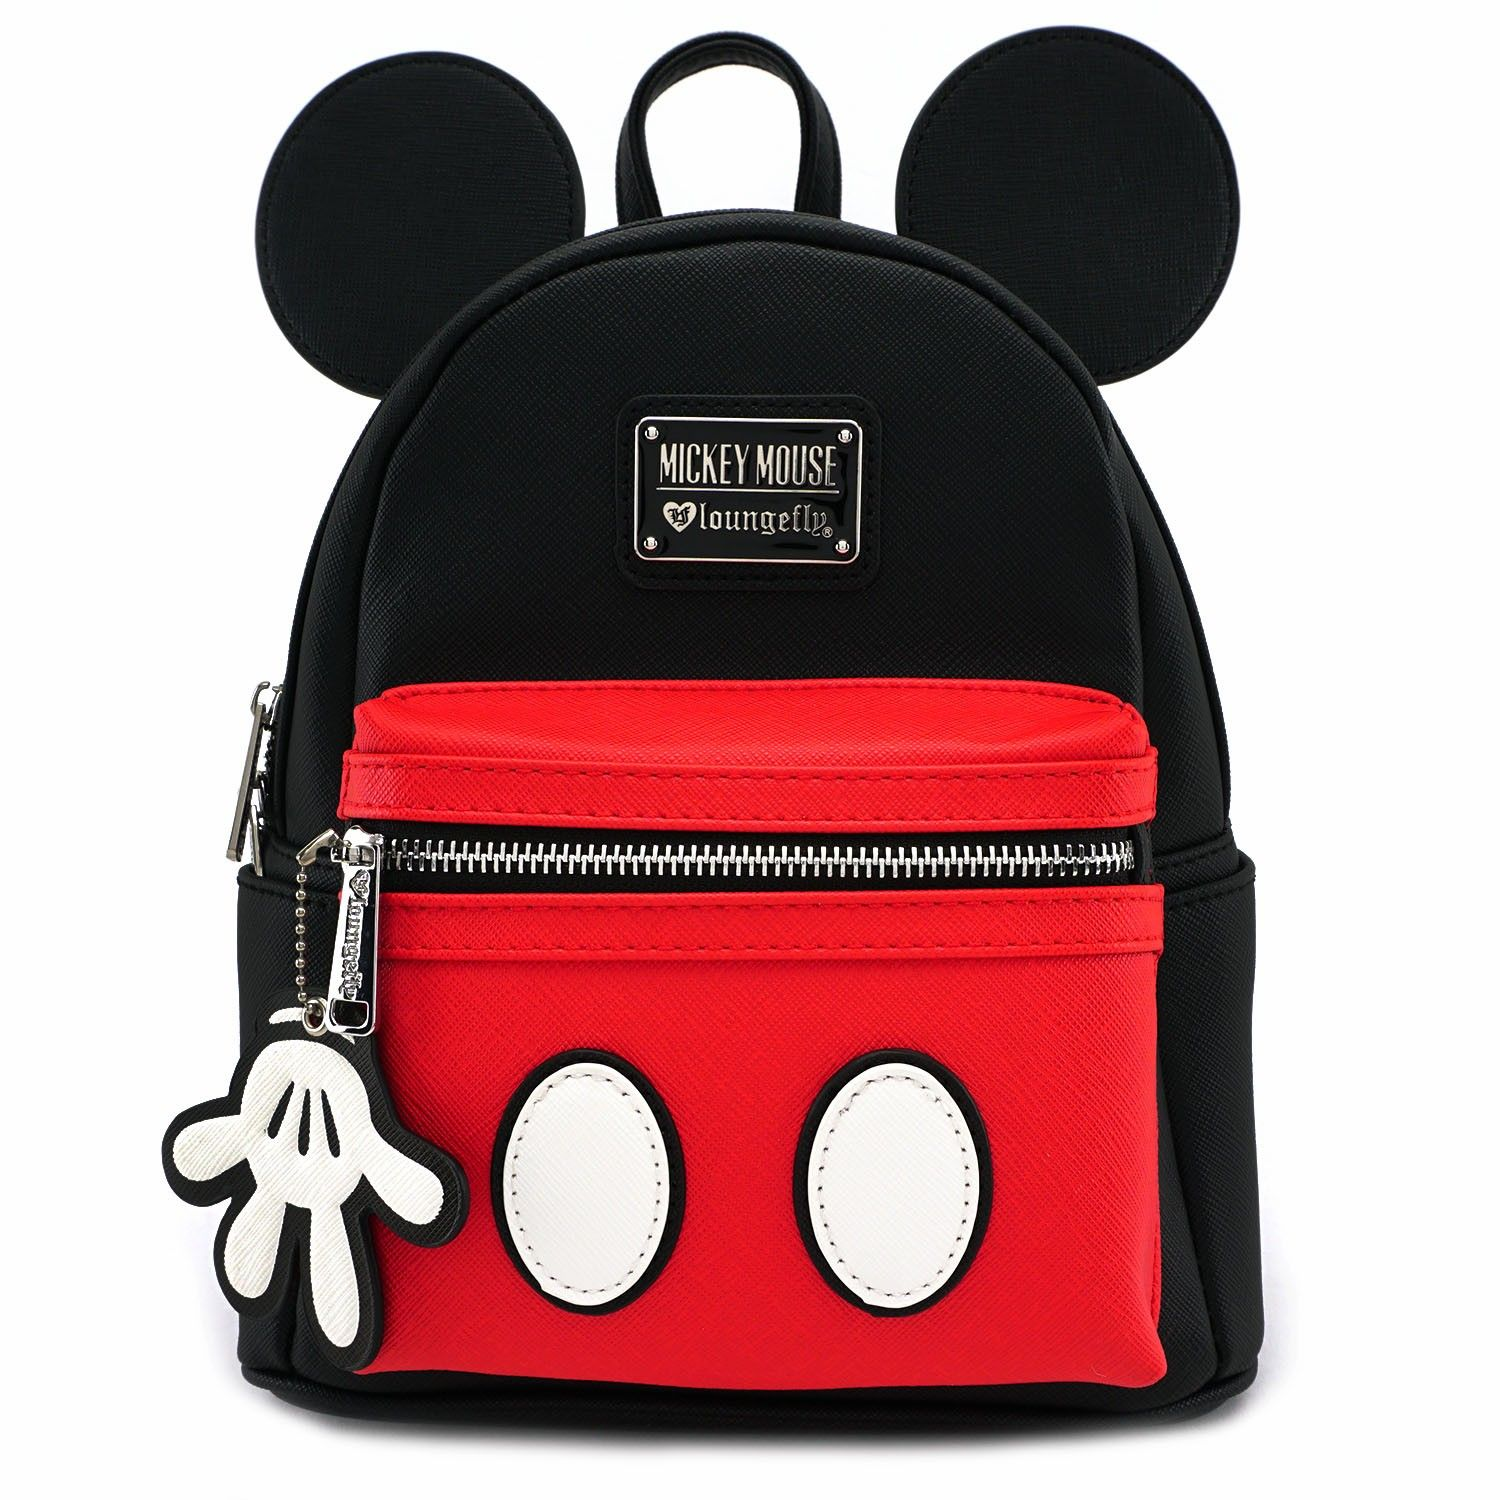 Loungefly x Mickey Suit Mini Saffiano Faux Leather Backpack - Disney -  Brands de1a506ae7aba